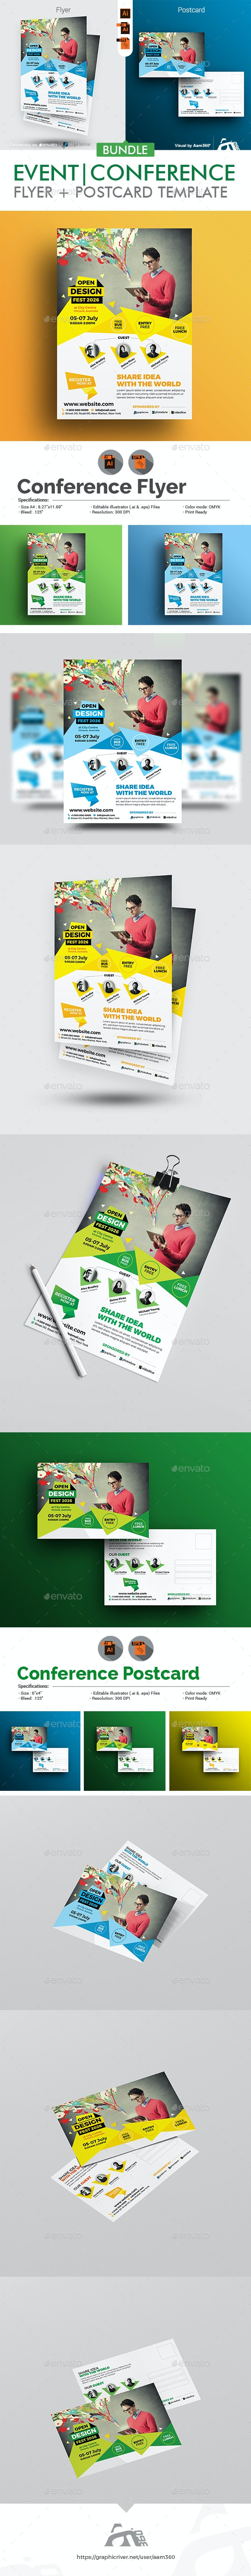 Conference Flyer and Postcard Bundle - Events Flyers